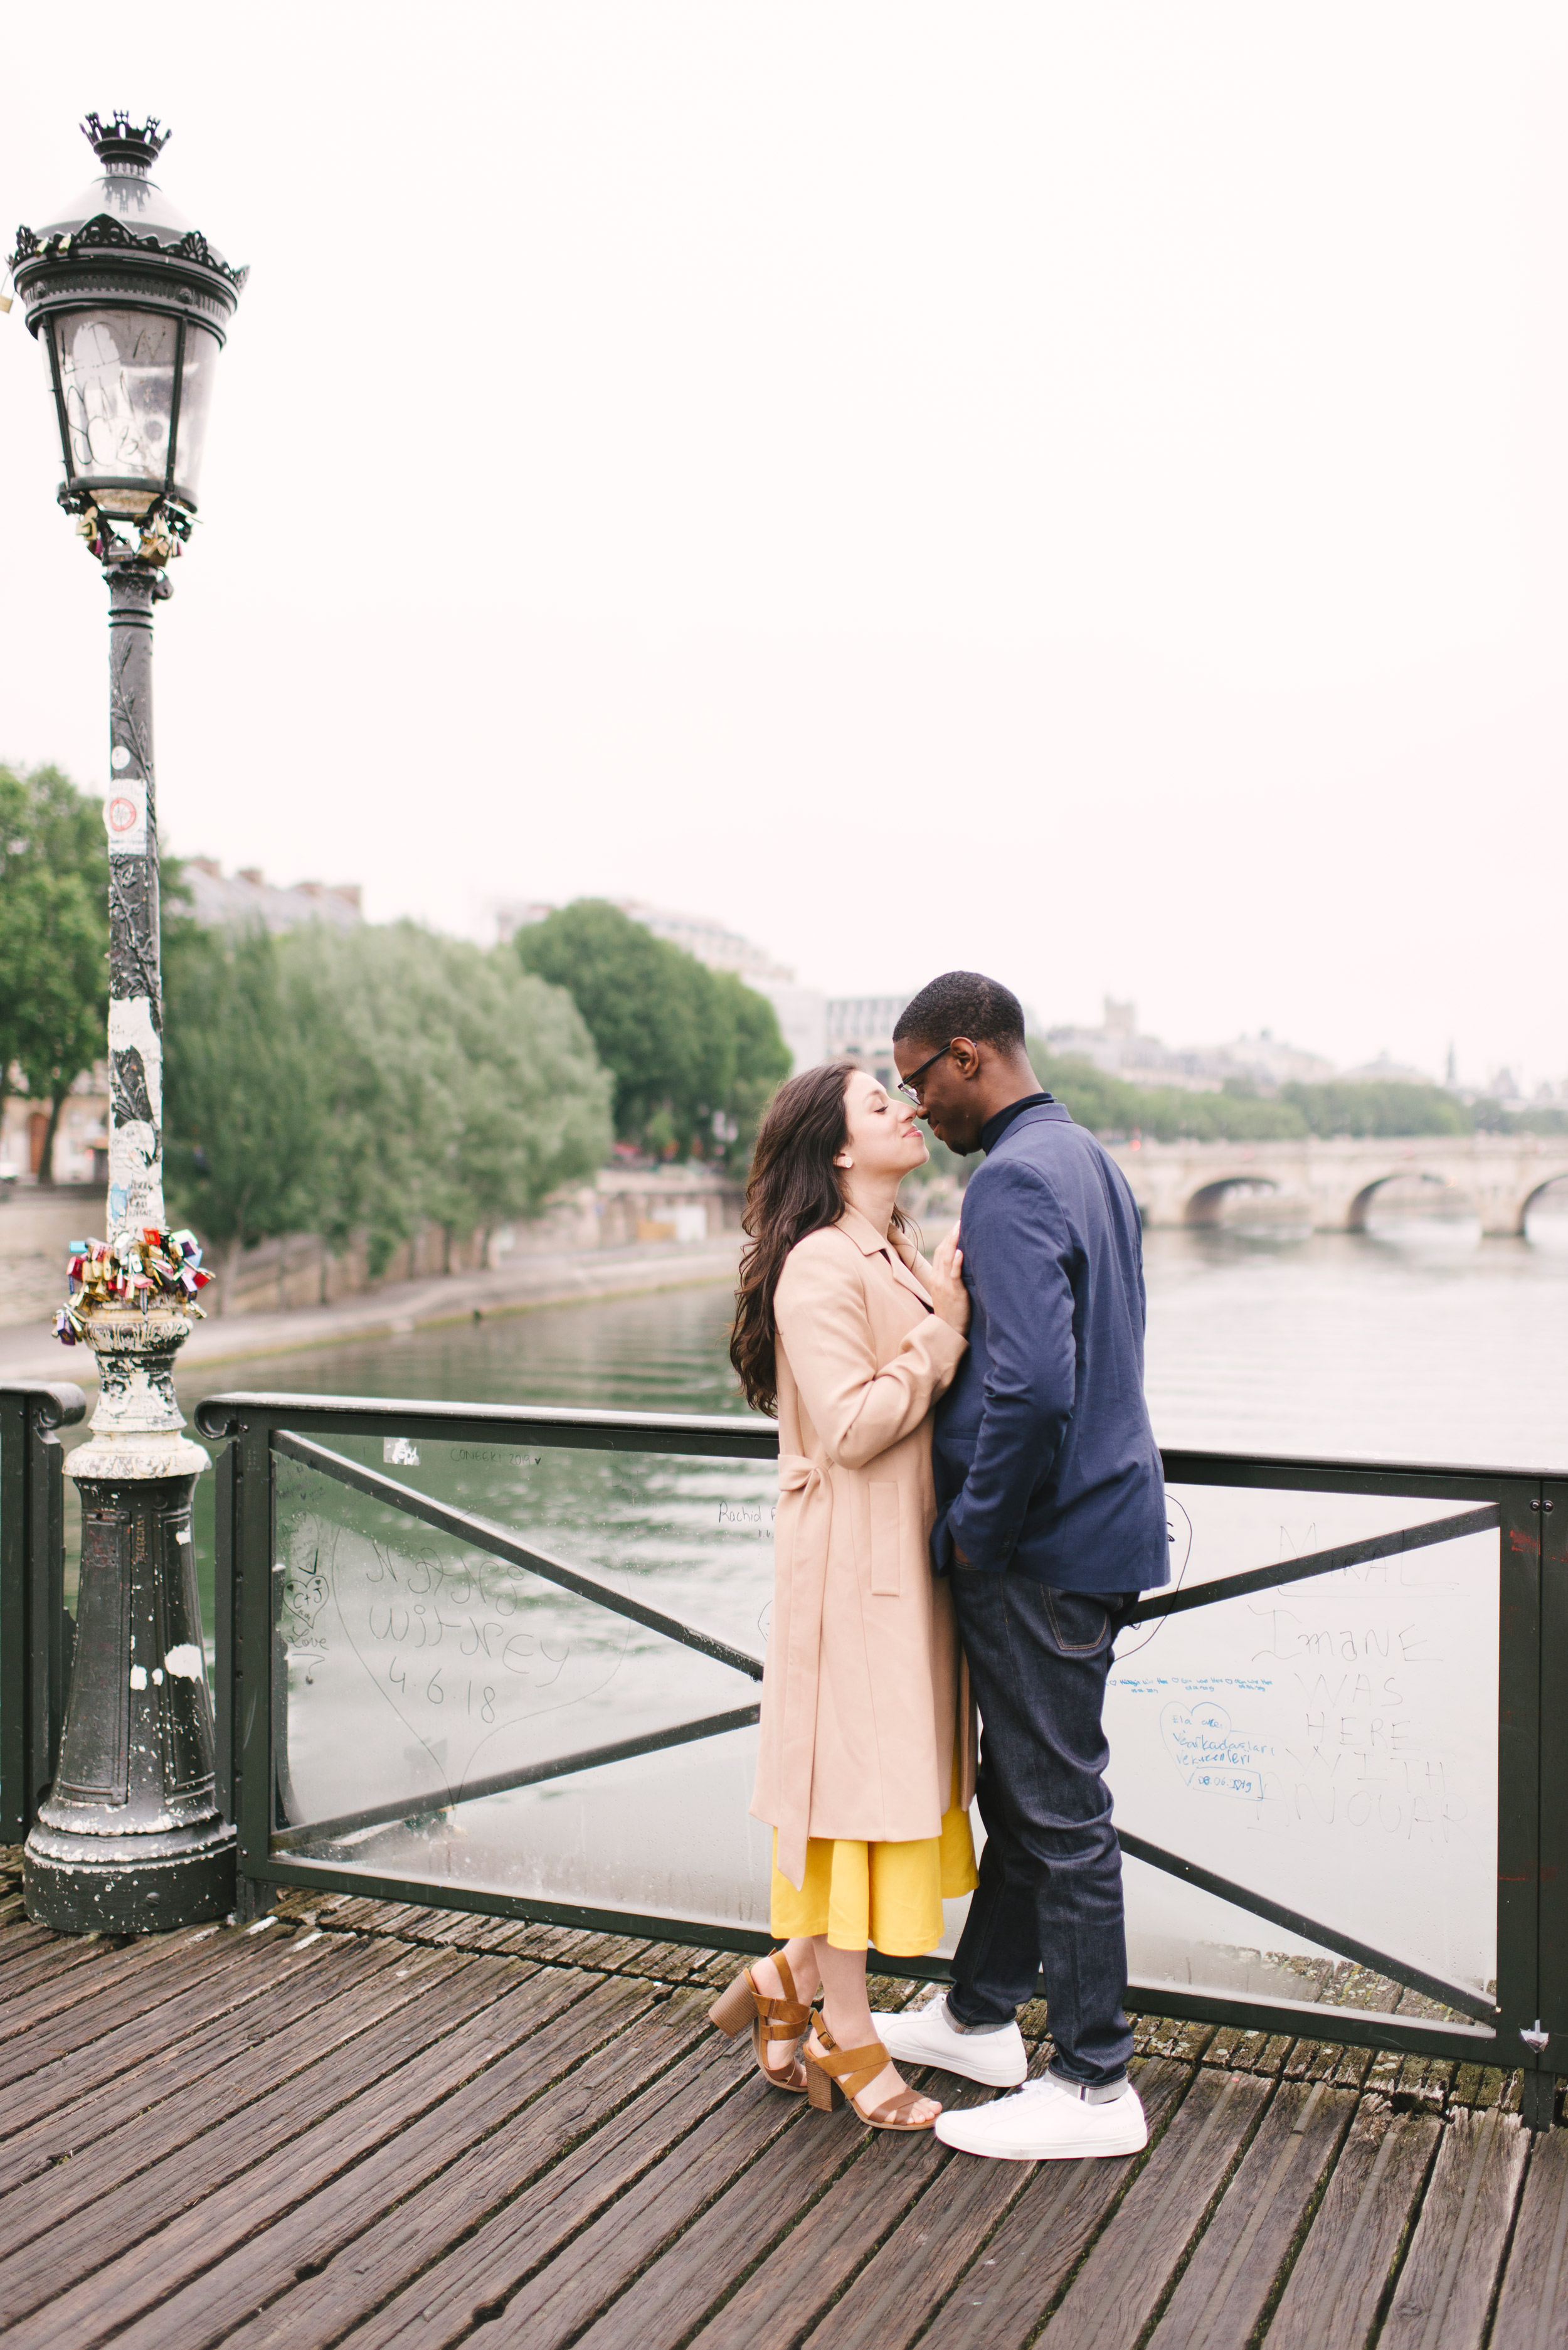 Couple-photoshoot-Paris-Pont-des-arts-Louvre-PalaisRoyale-021.jpg